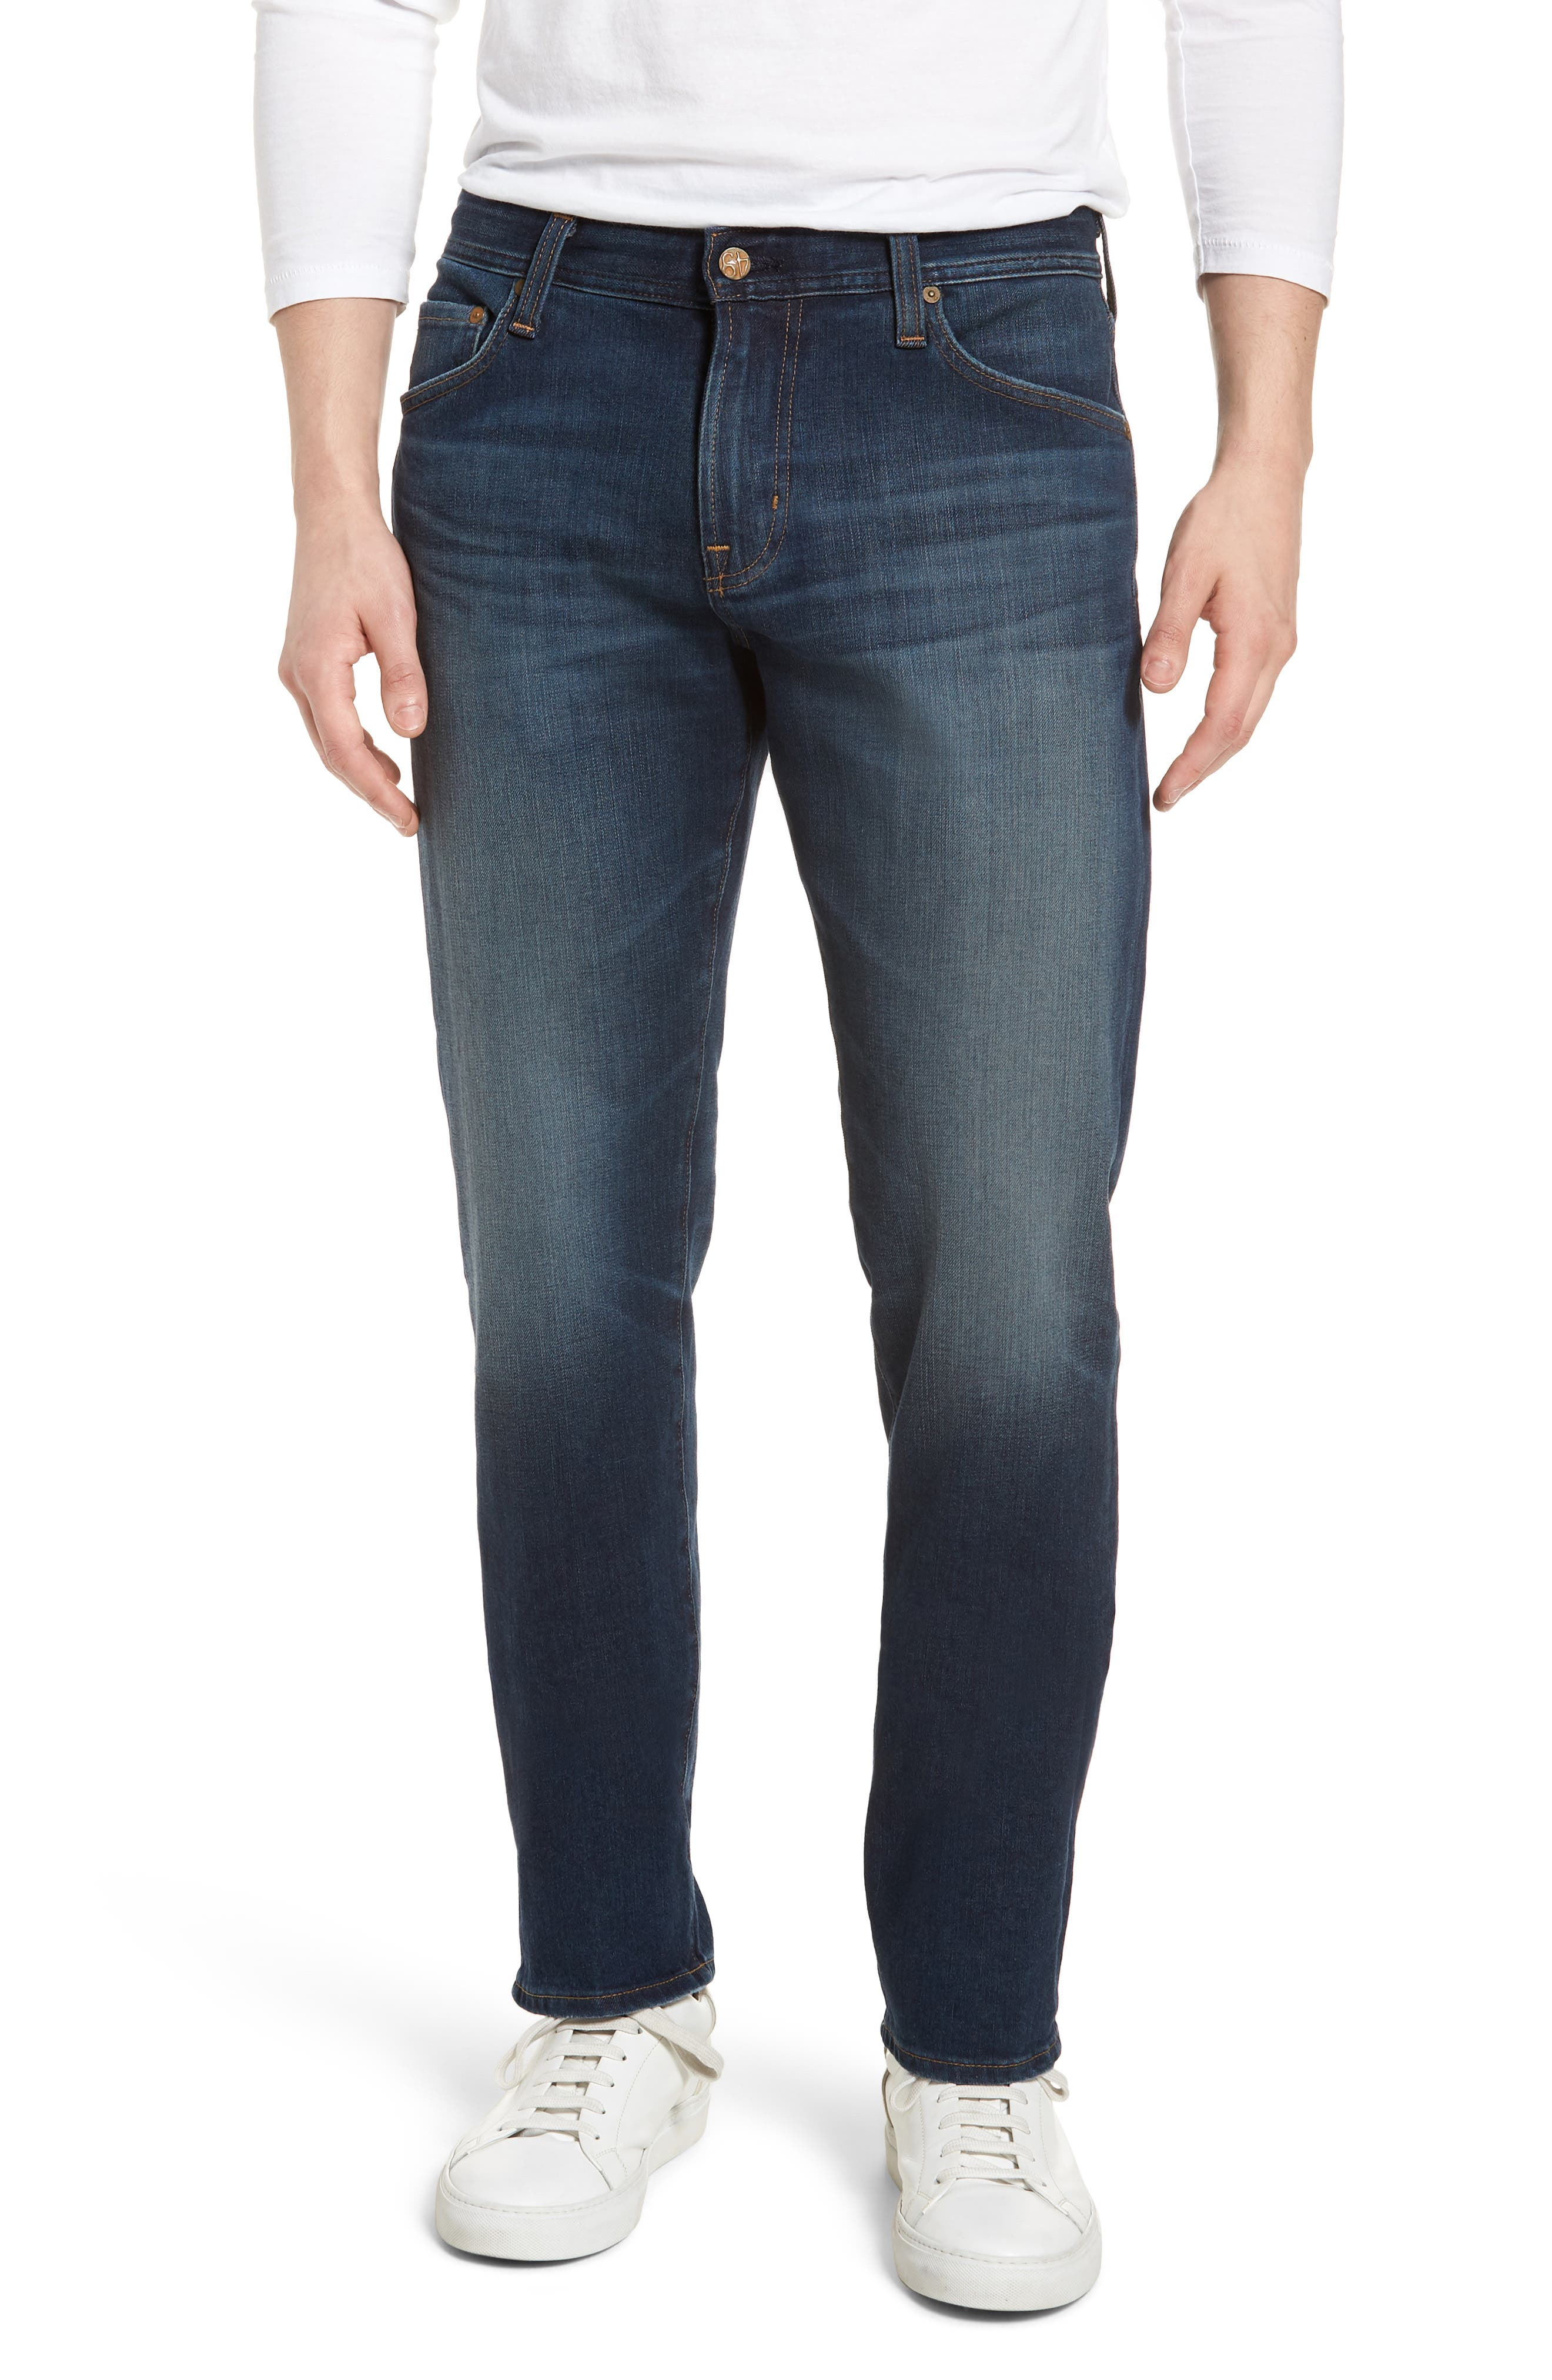 Graduate Slim Straight Leg Jeans,                         Main,                         color, 9 Years Faring